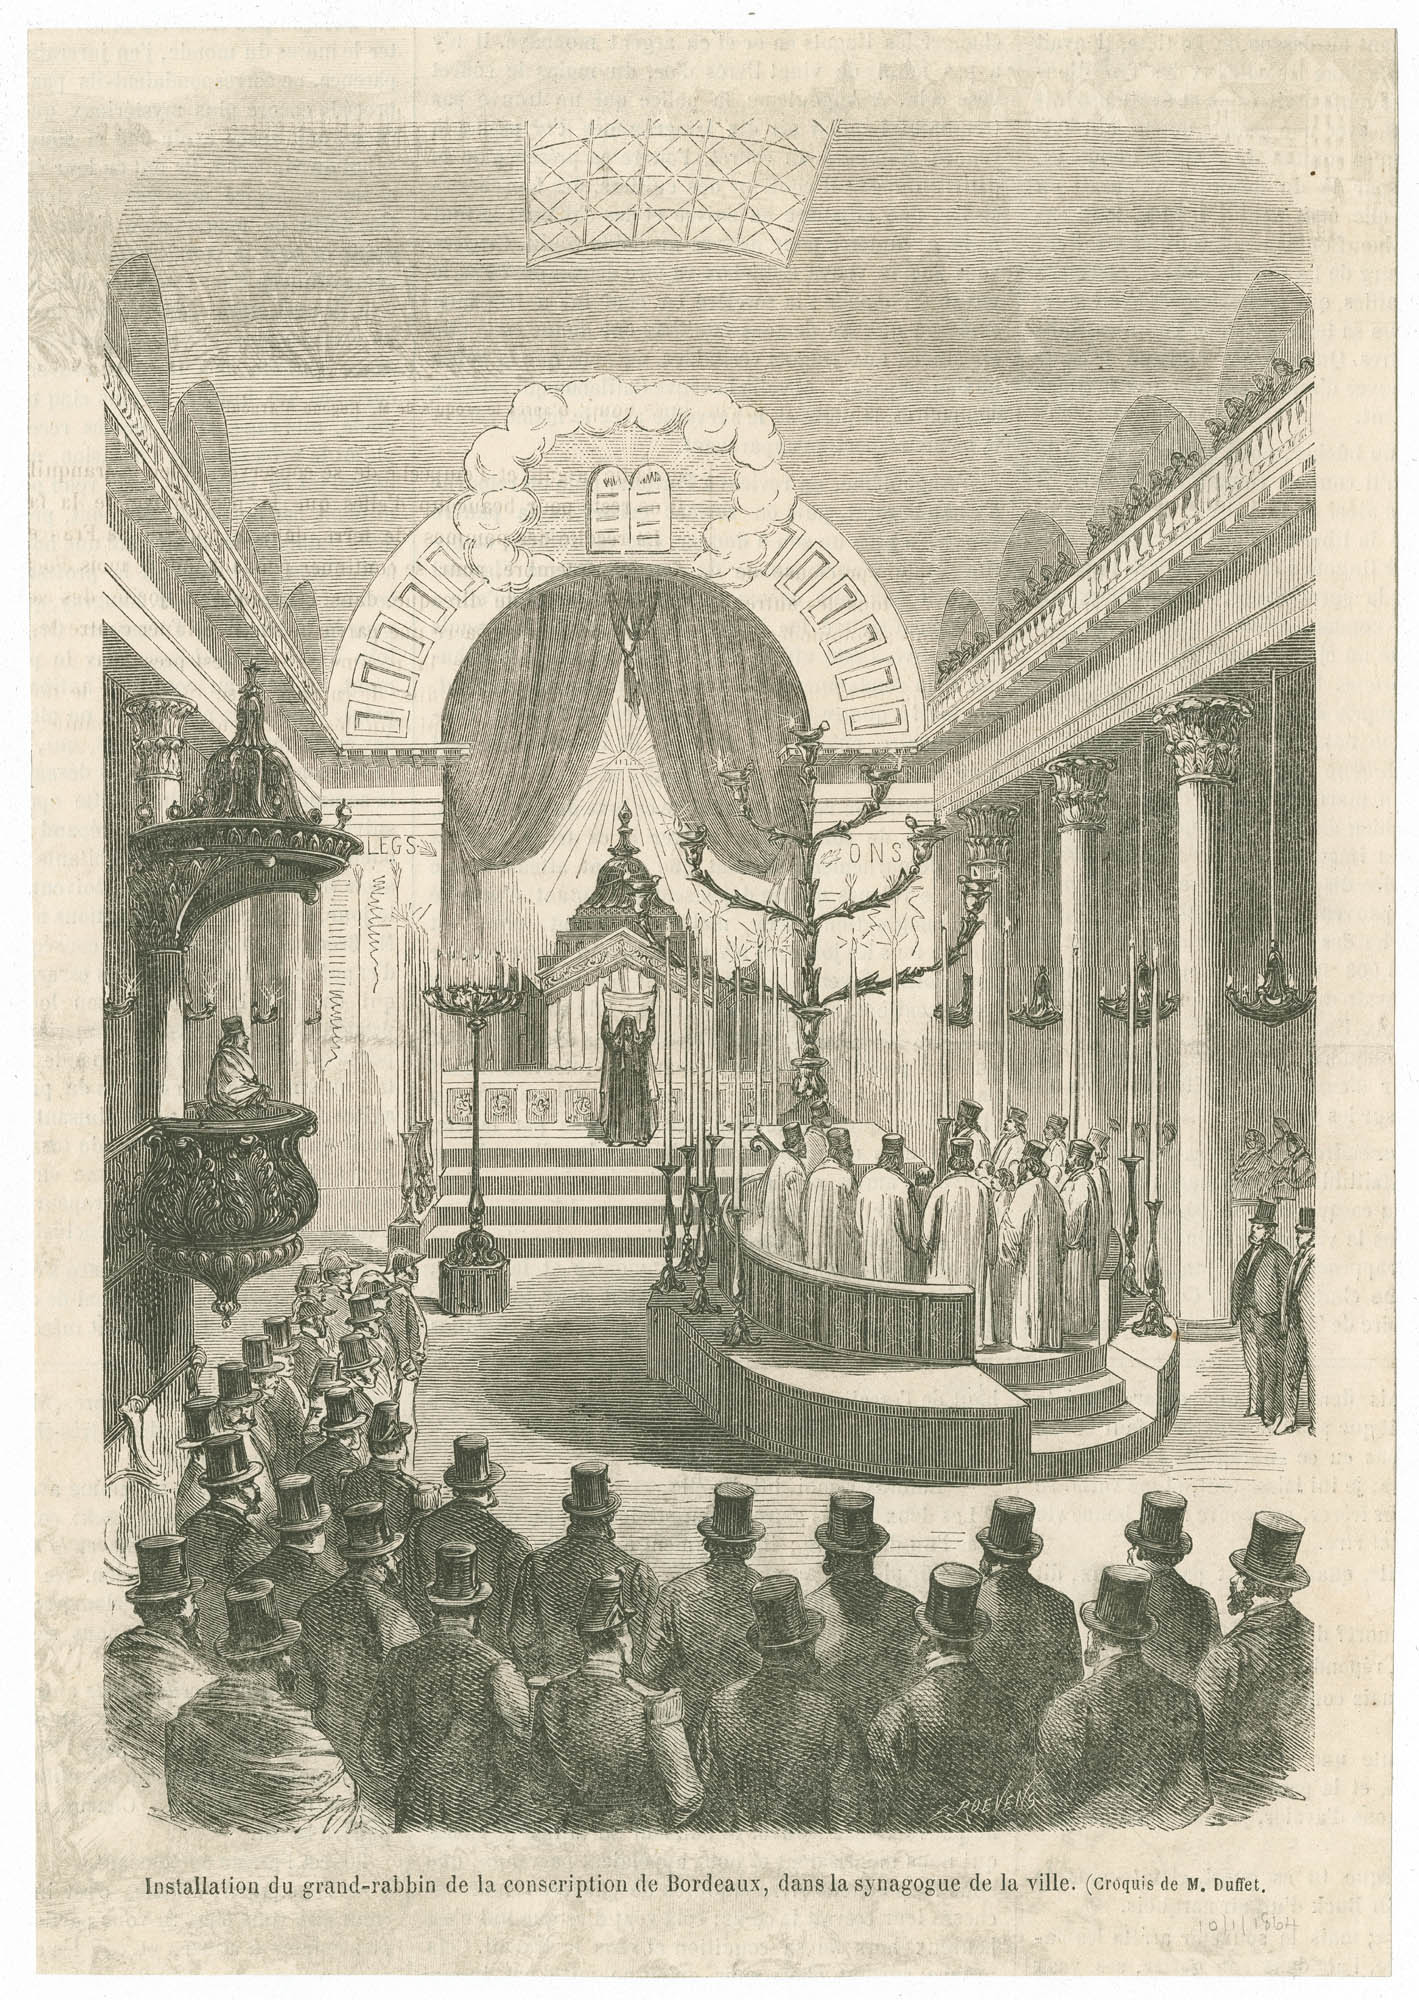 Installation du grand-rabbin de la conscription de Bordeaux, dans la synagogue de la ville